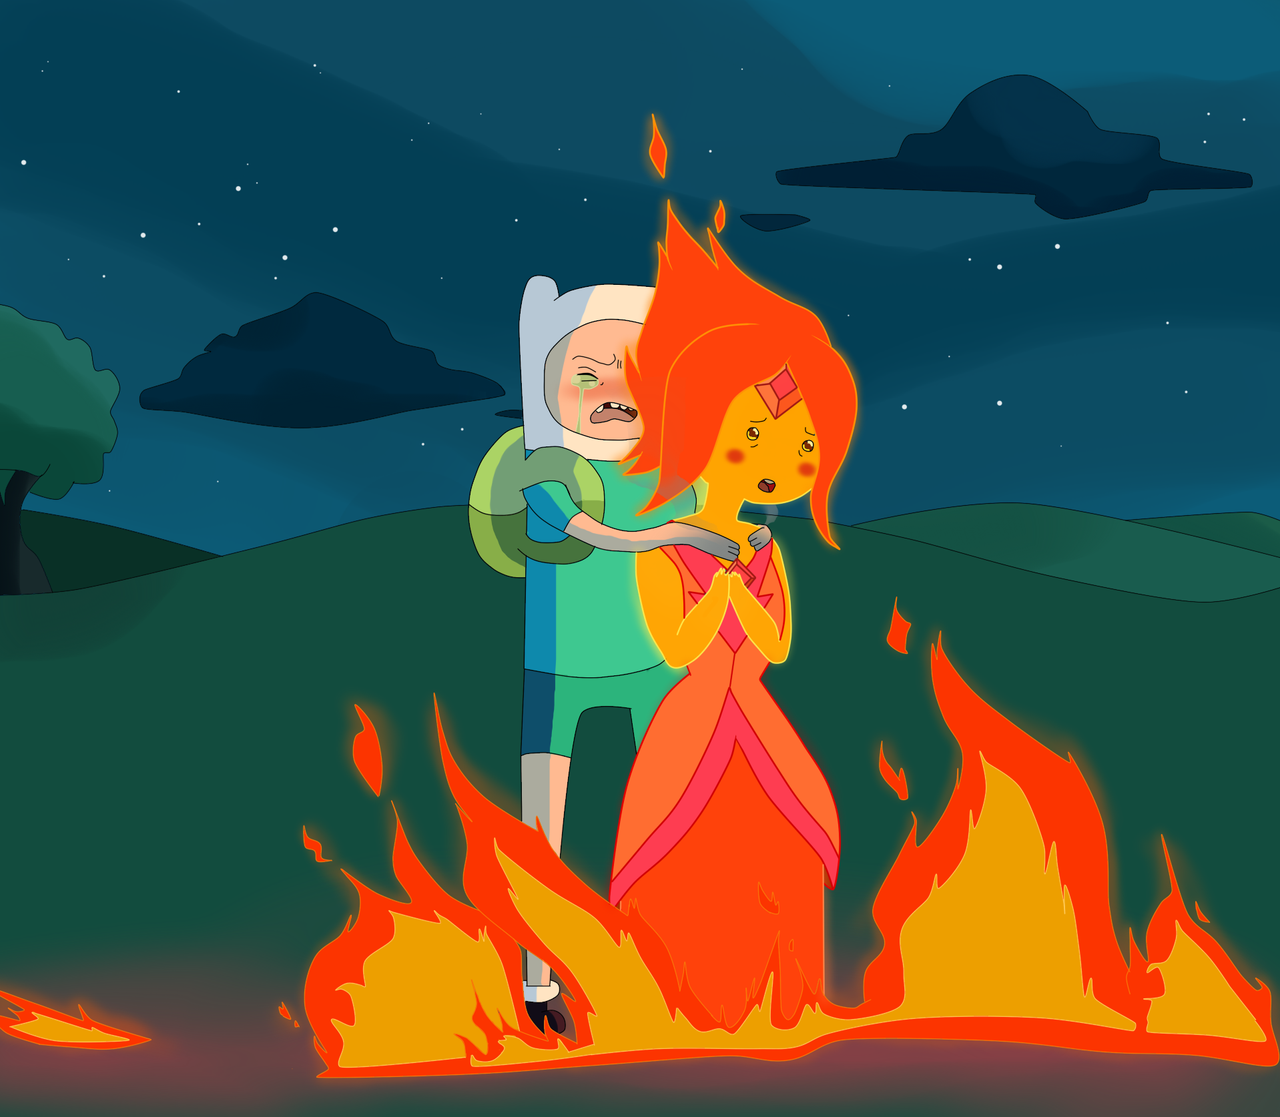 dating tiers adventure time Enjoy 30-50 great events each month from casual hangout to active adventure and world travel 1 (800) events and adventures it's time for a moment of.